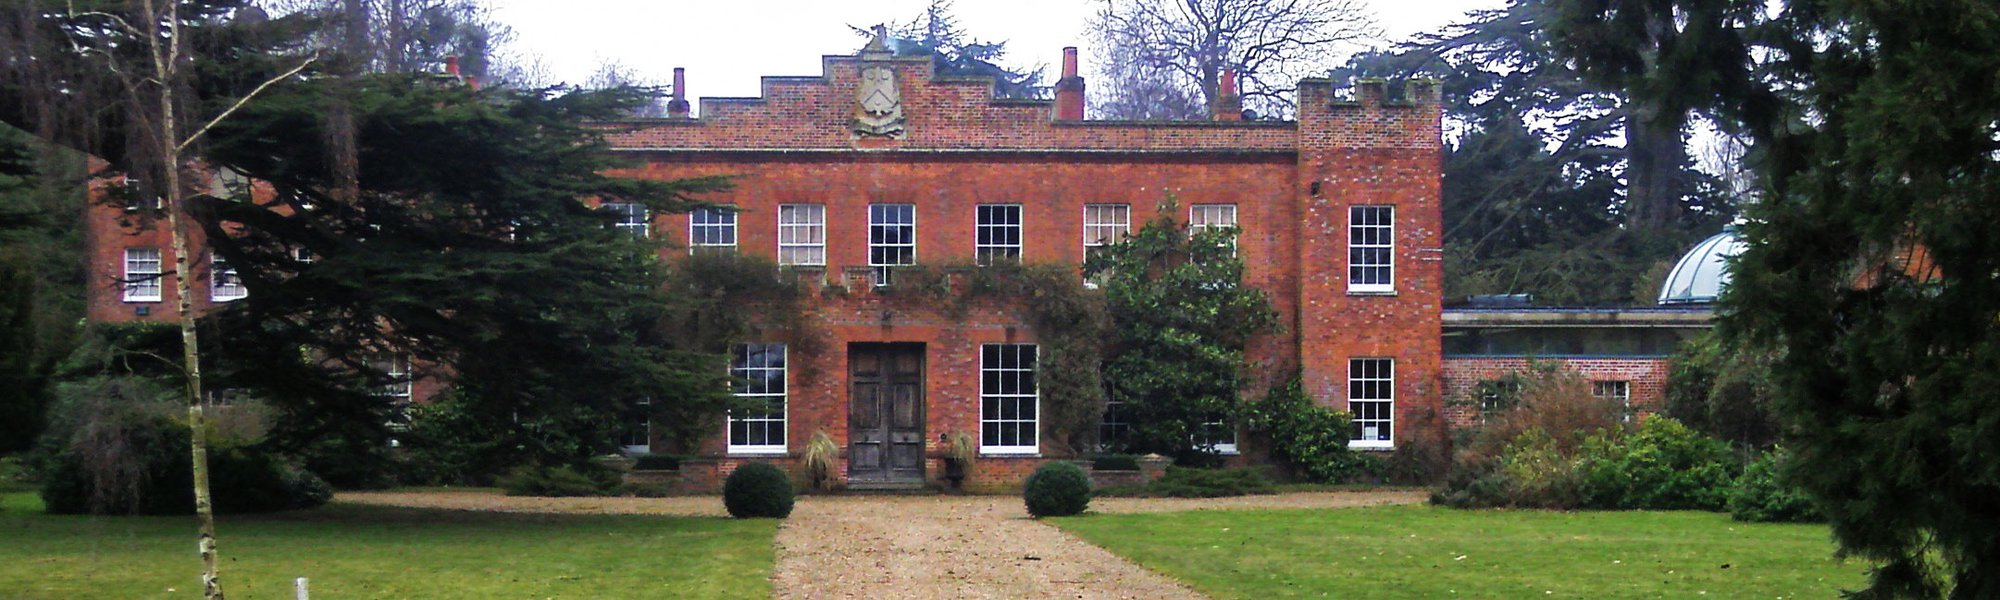 Crowsley Park House